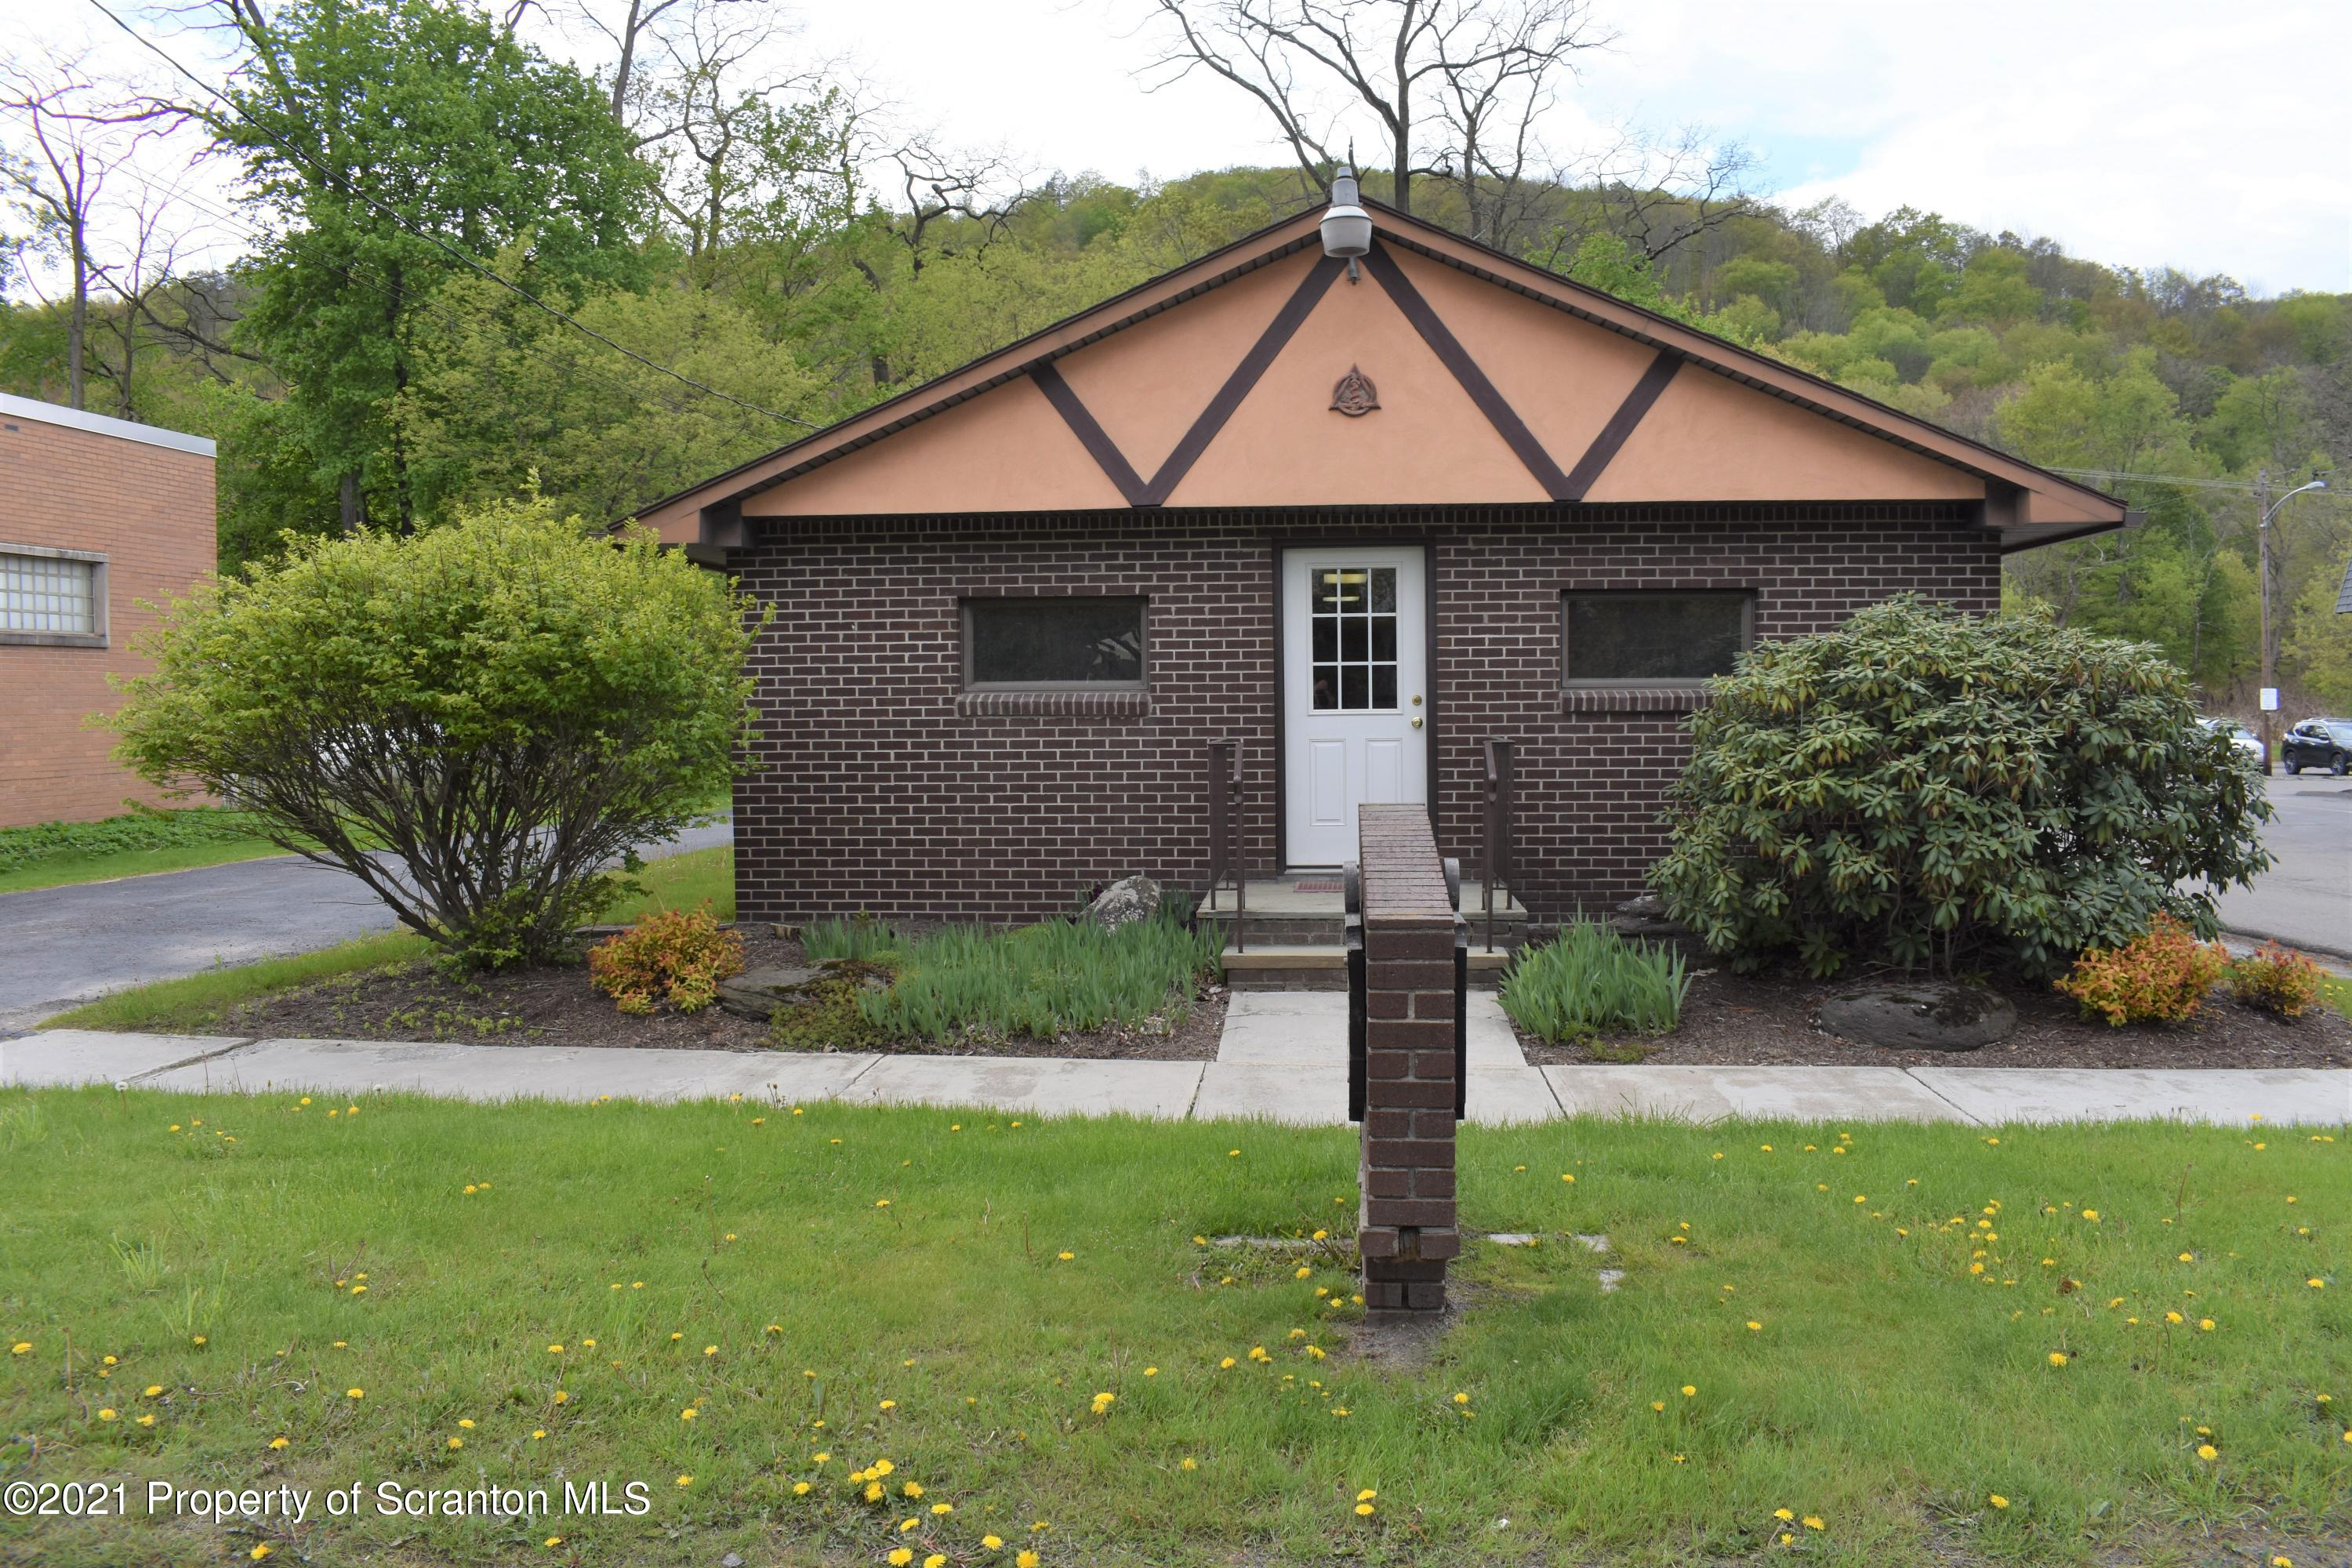 821 Main Street, New Milford, Pennsylvania 18834, ,2 BathroomsBathrooms,Commercial,For Sale,Main,21-1798